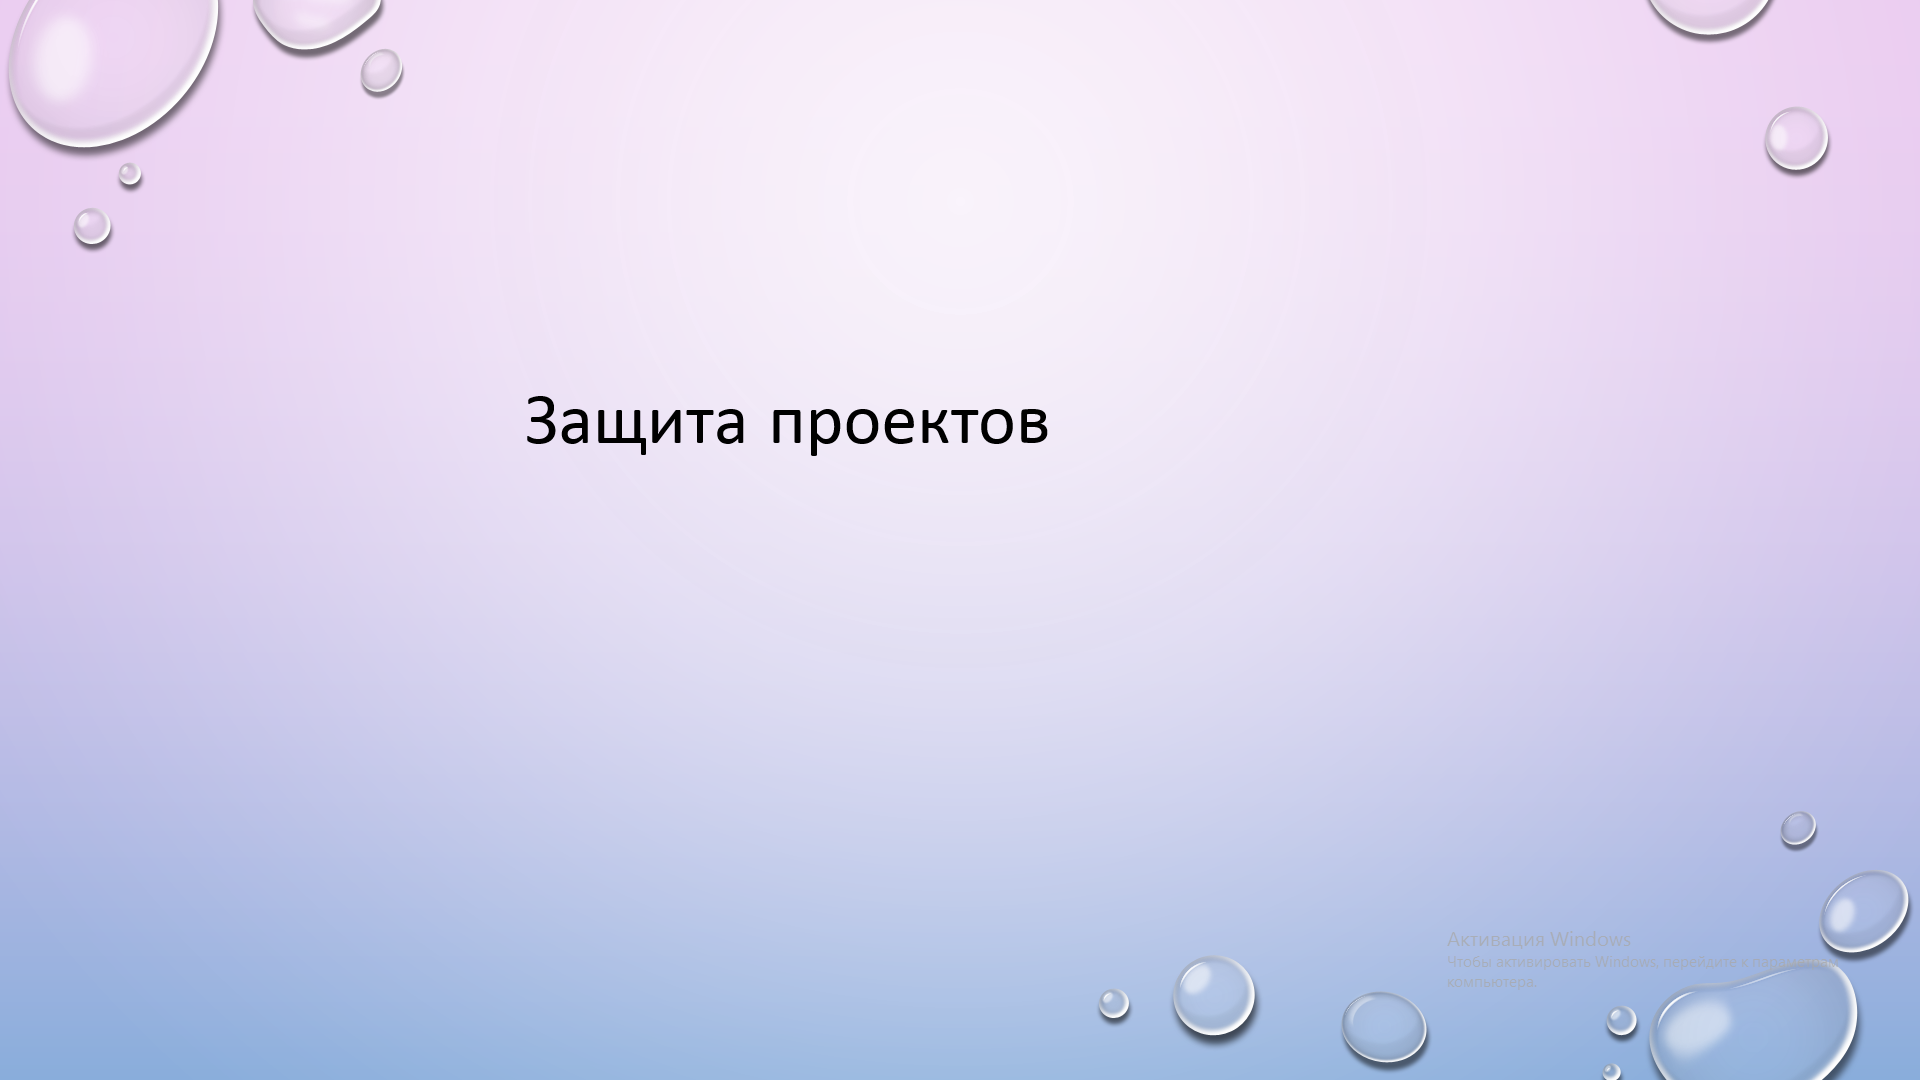 hello_html_m62d46599.png